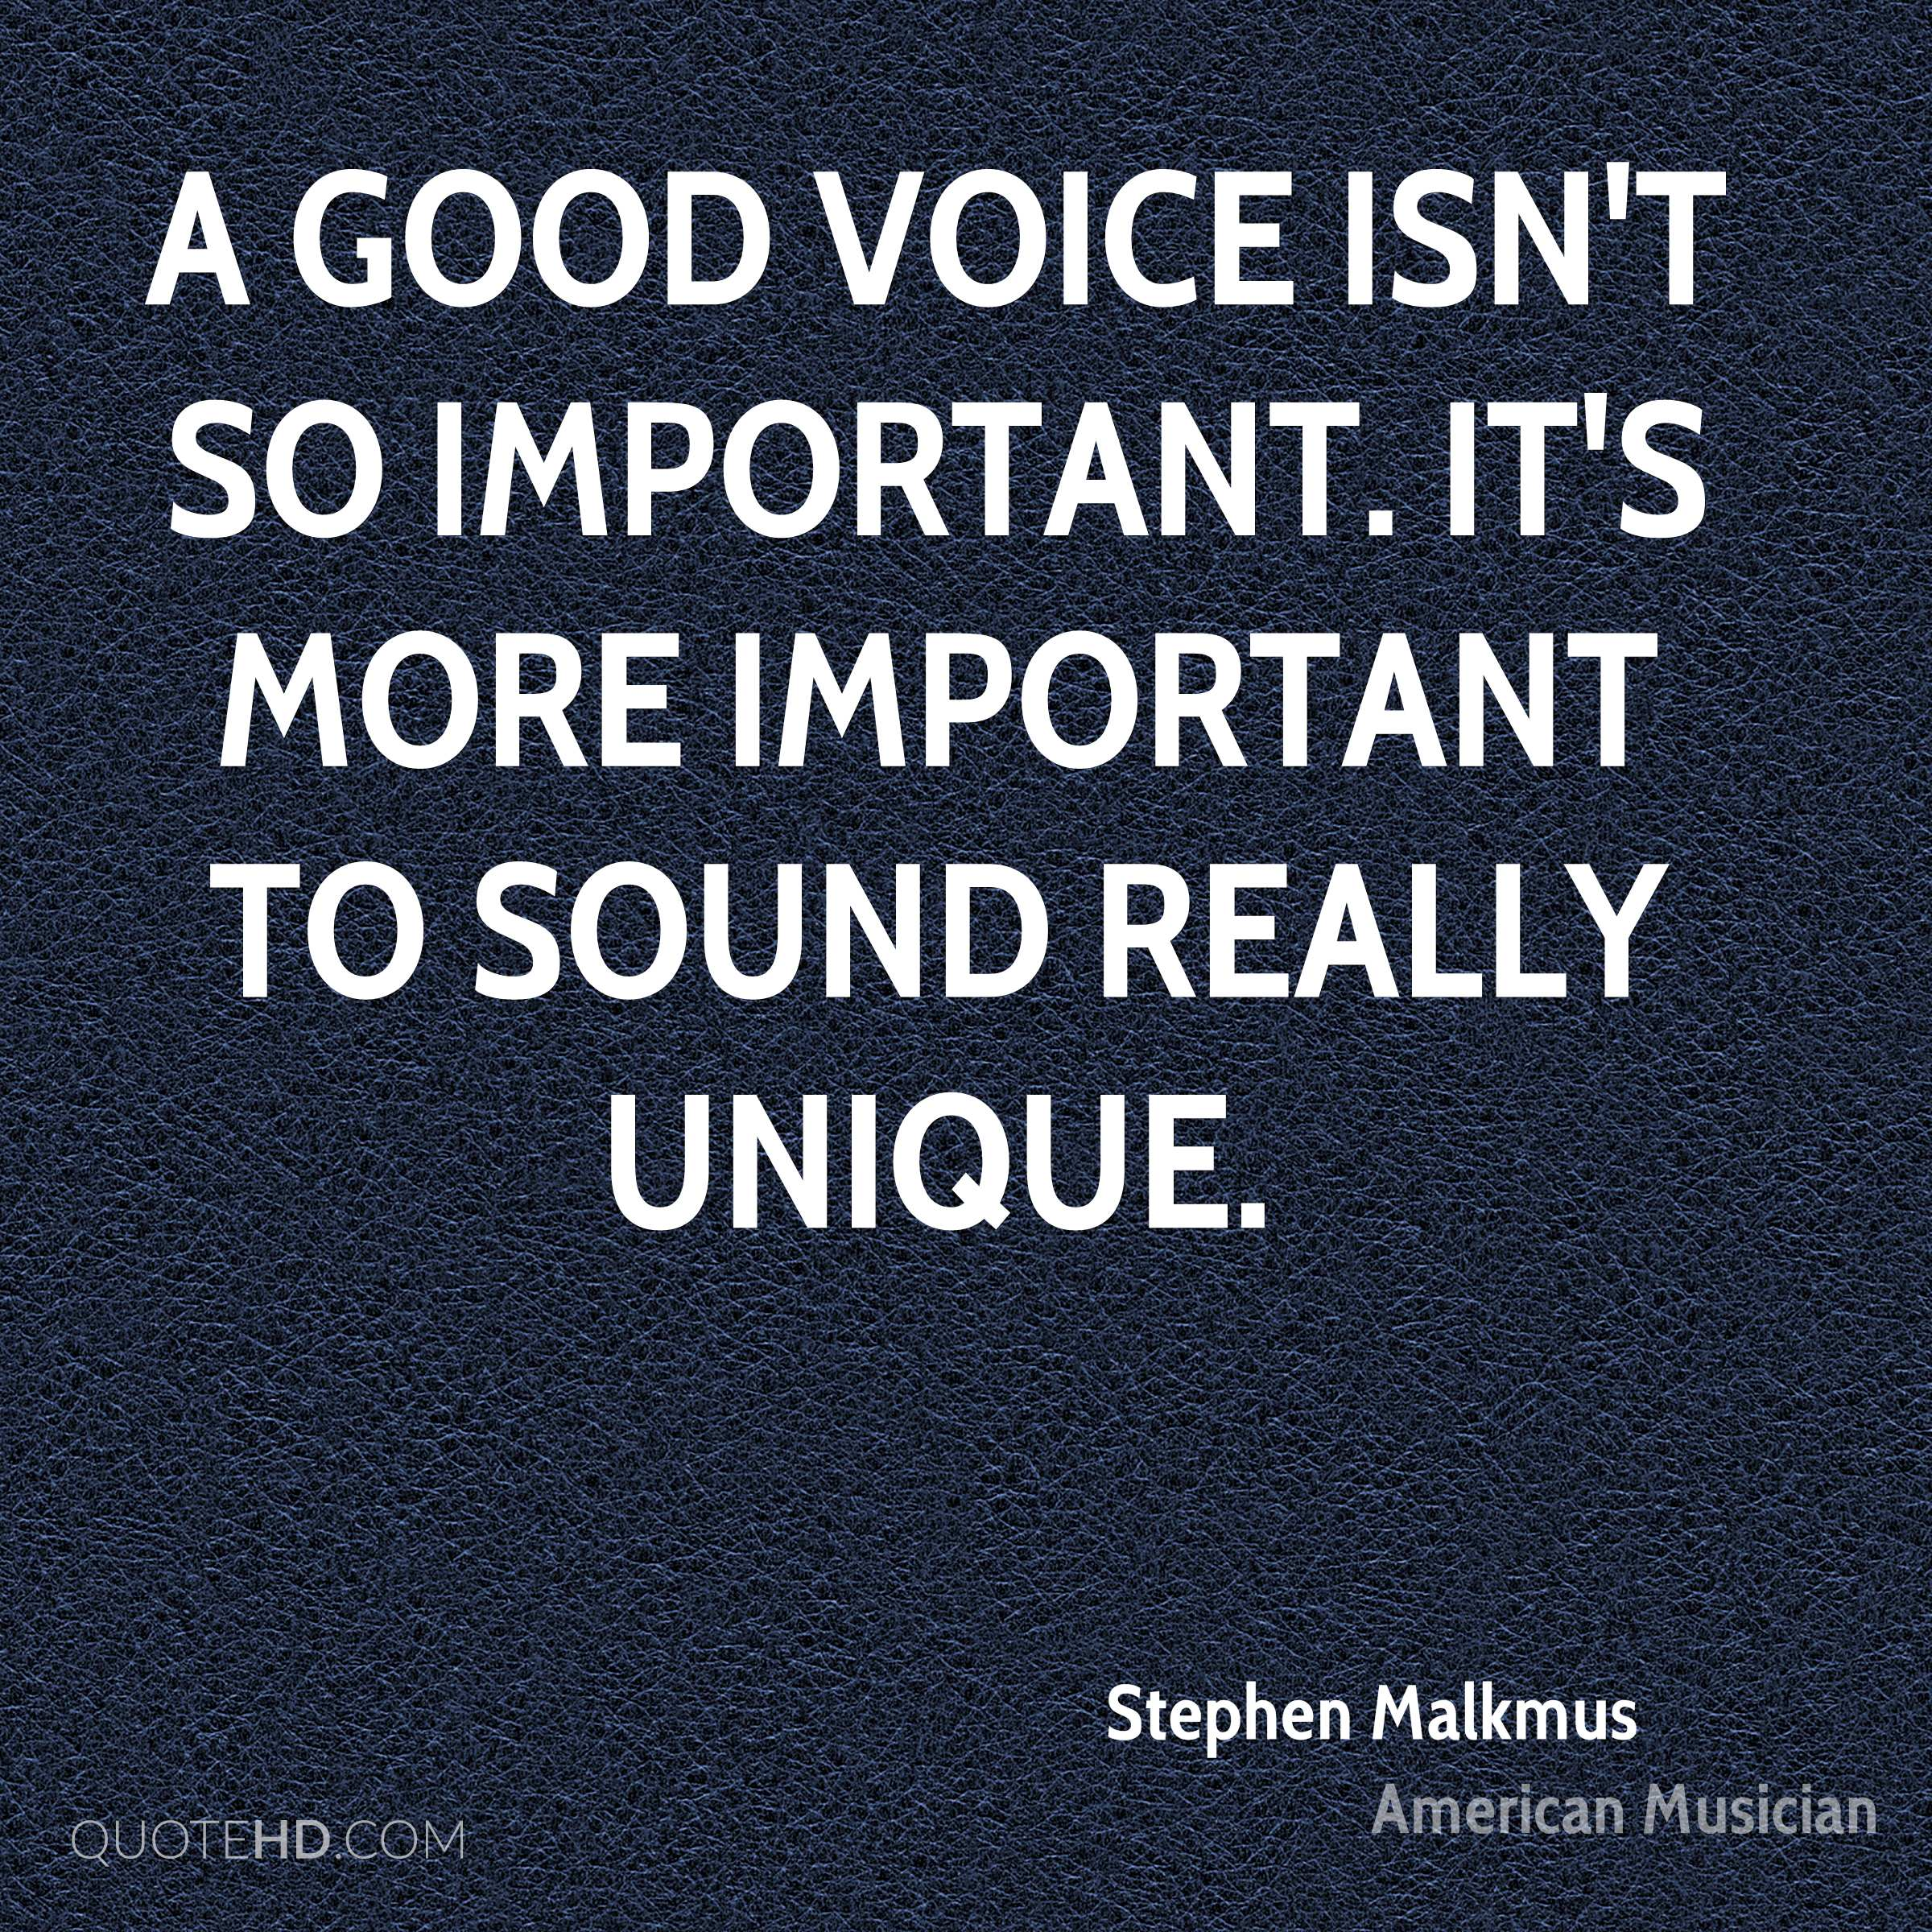 A good voice isn't so important. It's more important to sound really unique.